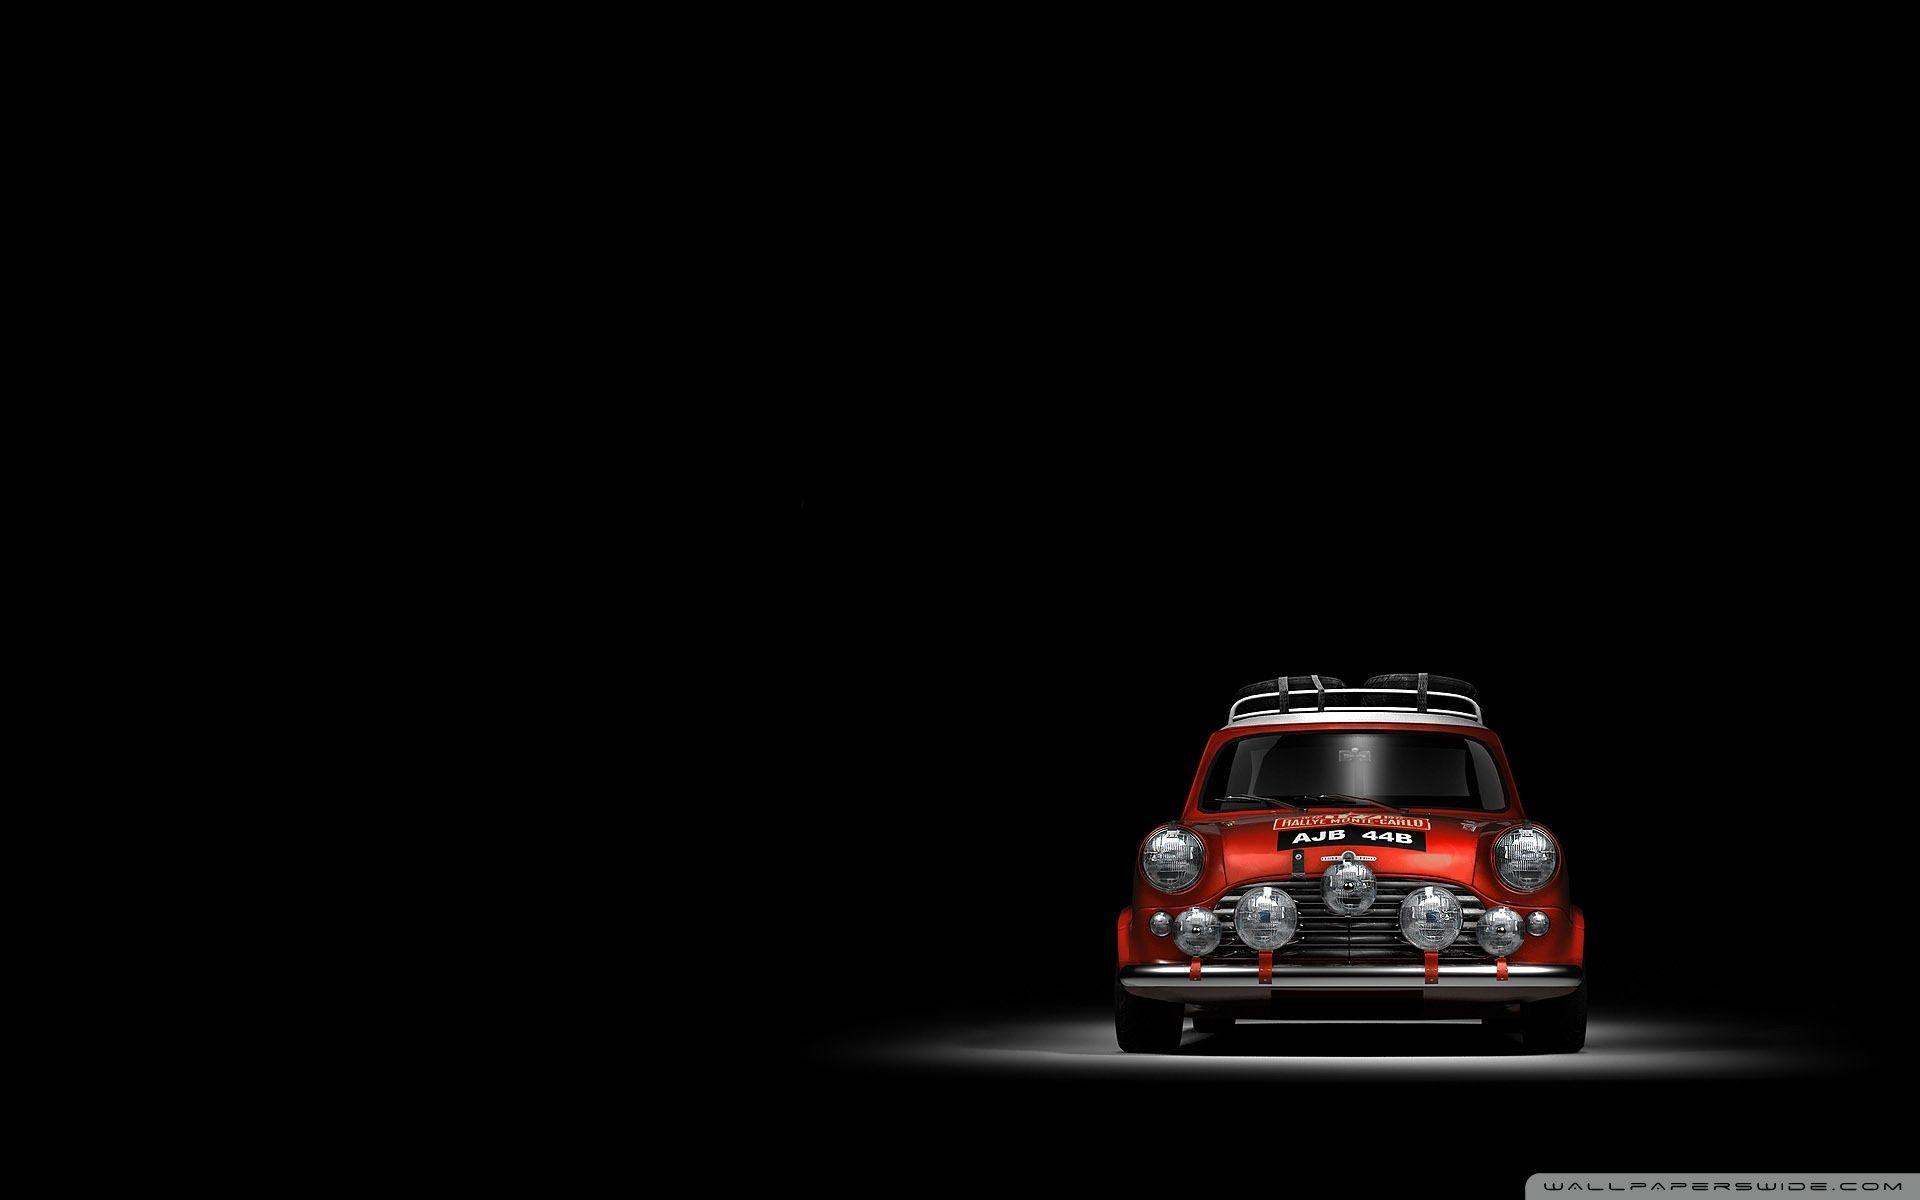 WallpapersWide ❤ Mini Cooper HD Desktop Wallpapers for 4K Ultra